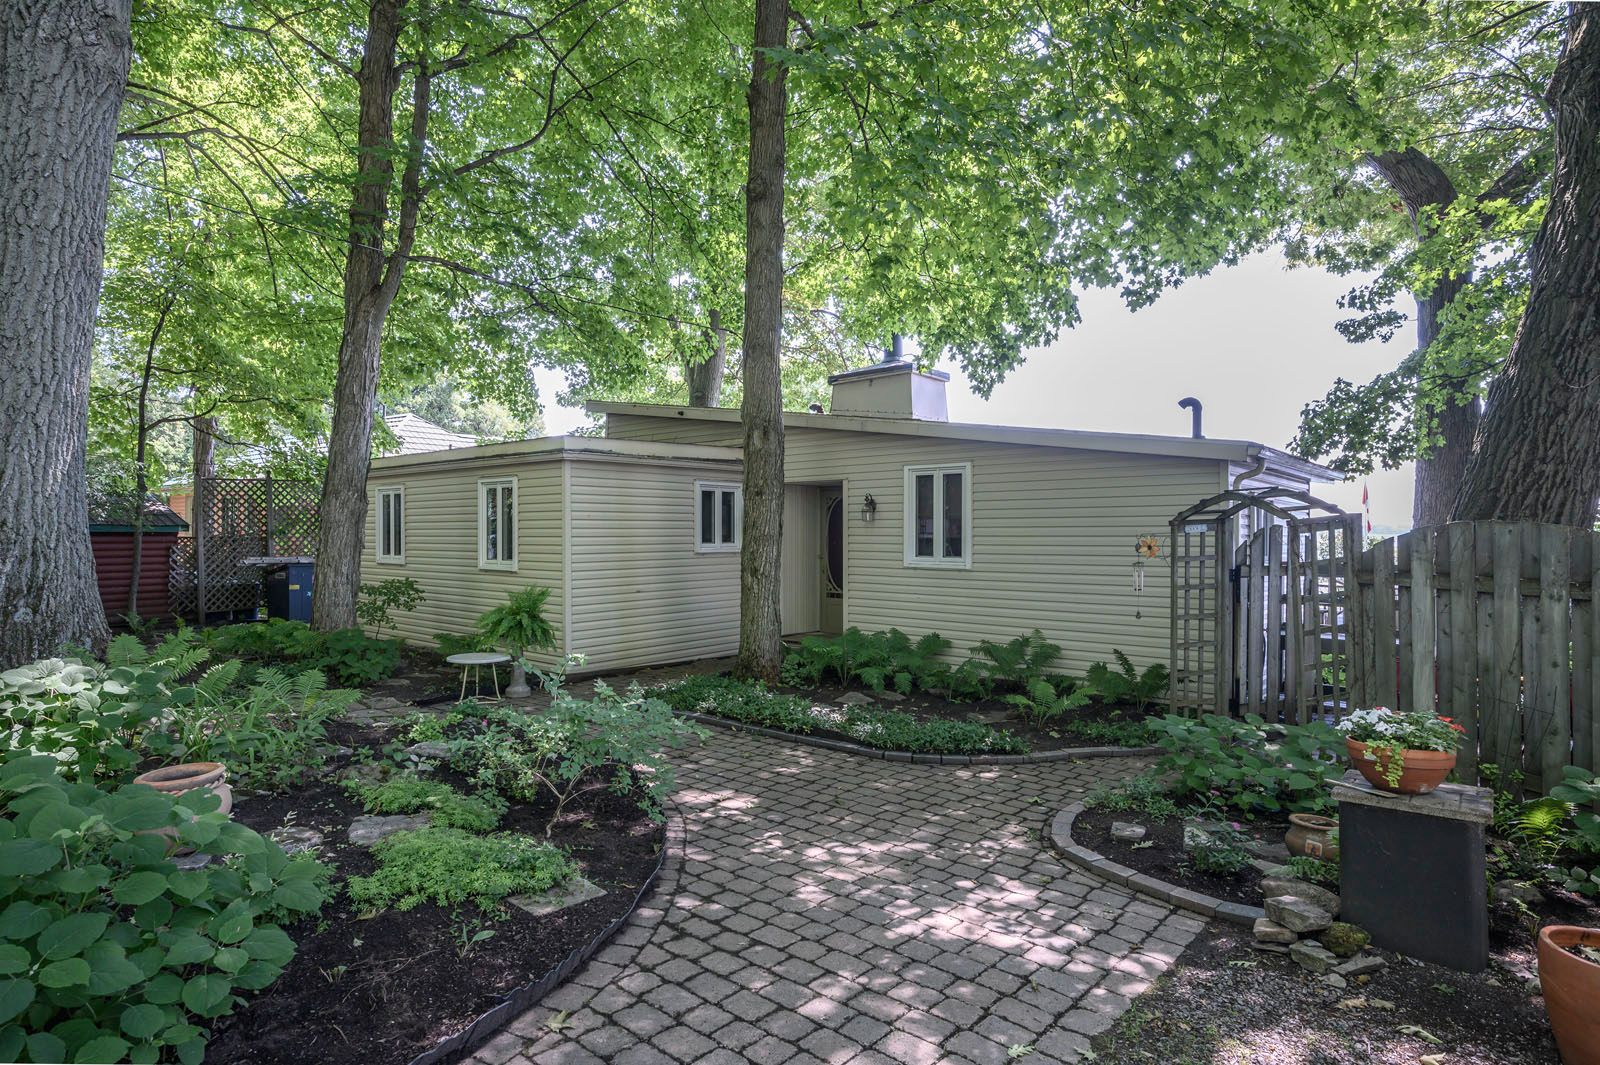 Photo 7: Photos: 54 Hamilton Island Road in Summerstown: Summerstown, ON Recreational for sale (St.Lawrence River)